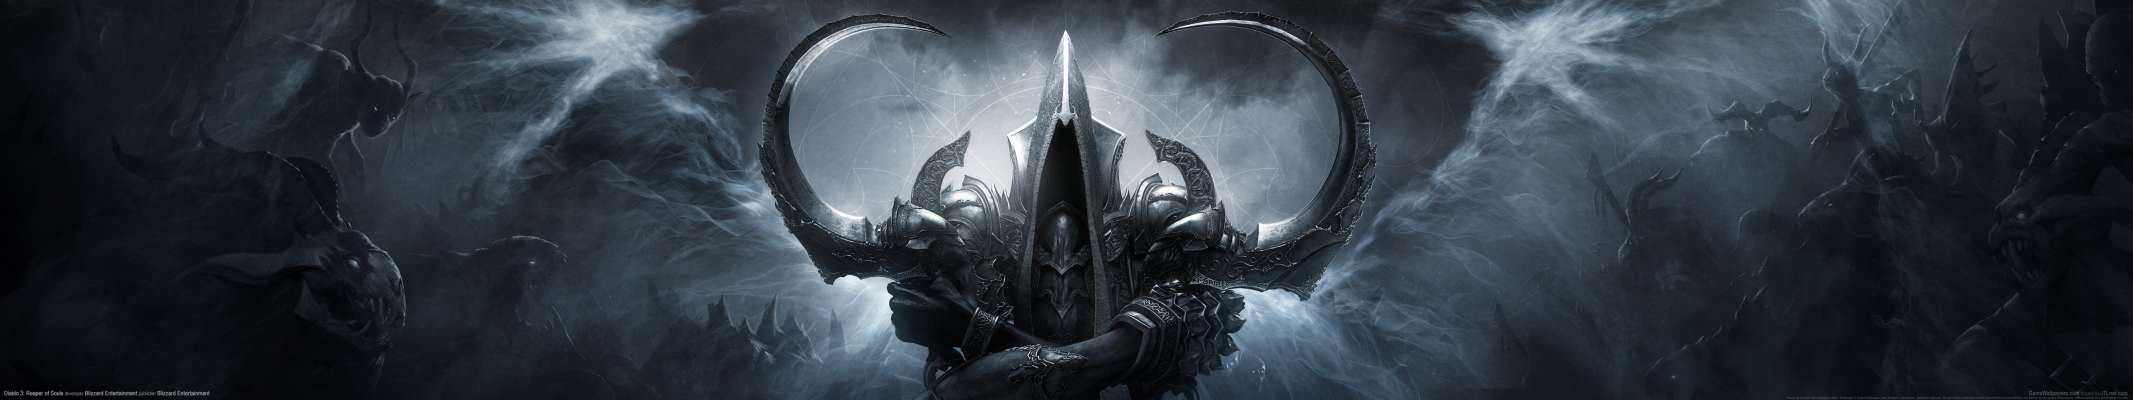 Diablo 3: Reaper of Souls triple screen achtergrond